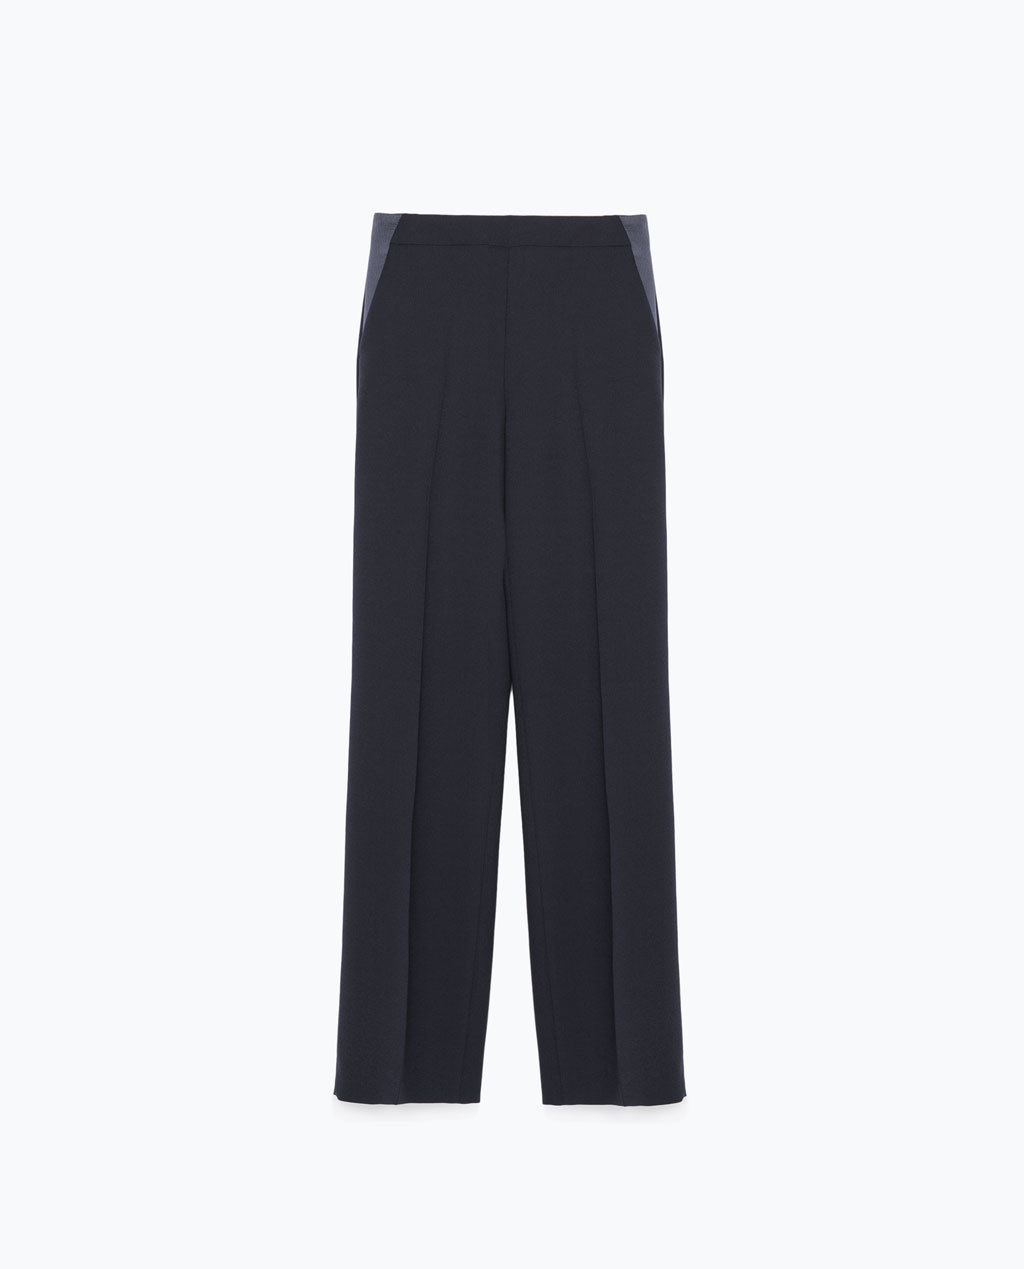 Crepe Drapey Wide Trousers - length: standard; pattern: plain; waist: mid/regular rise; predominant colour: navy; occasions: evening, work, creative work; fibres: polyester/polyamide - 100%; texture group: crepes; fit: wide leg; pattern type: fabric; style: standard; season: s/s 2015